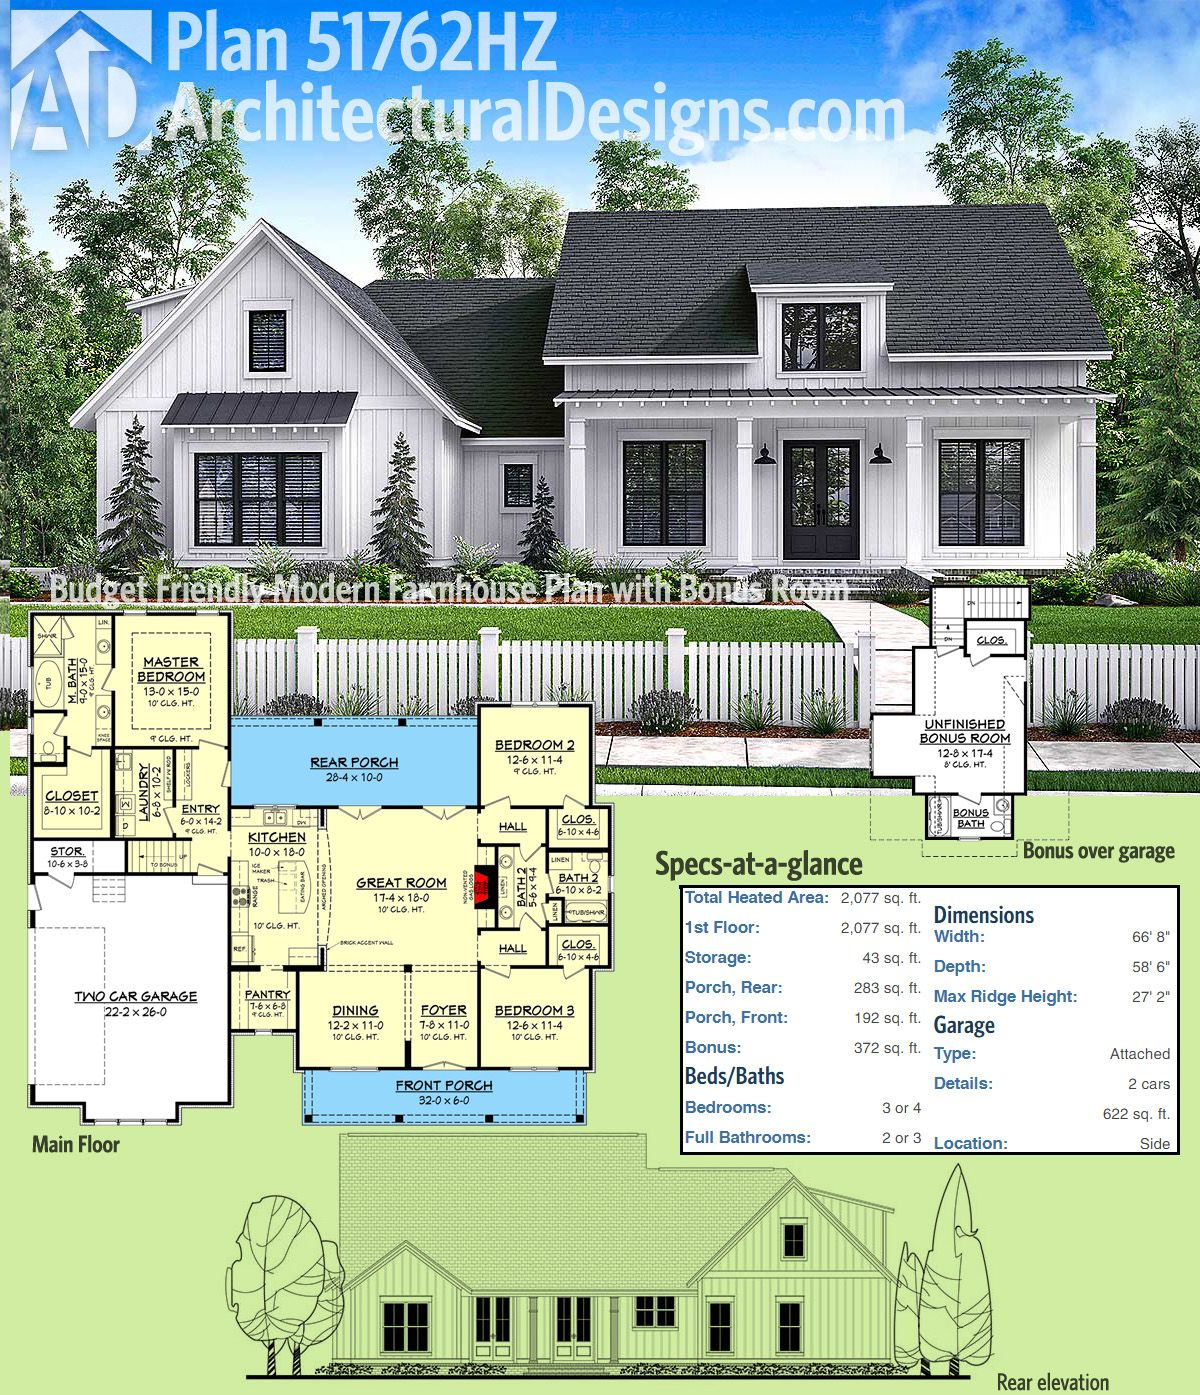 Plan 51762hz budget friendly modern farmhouse plan with for Cost to build farmhouse